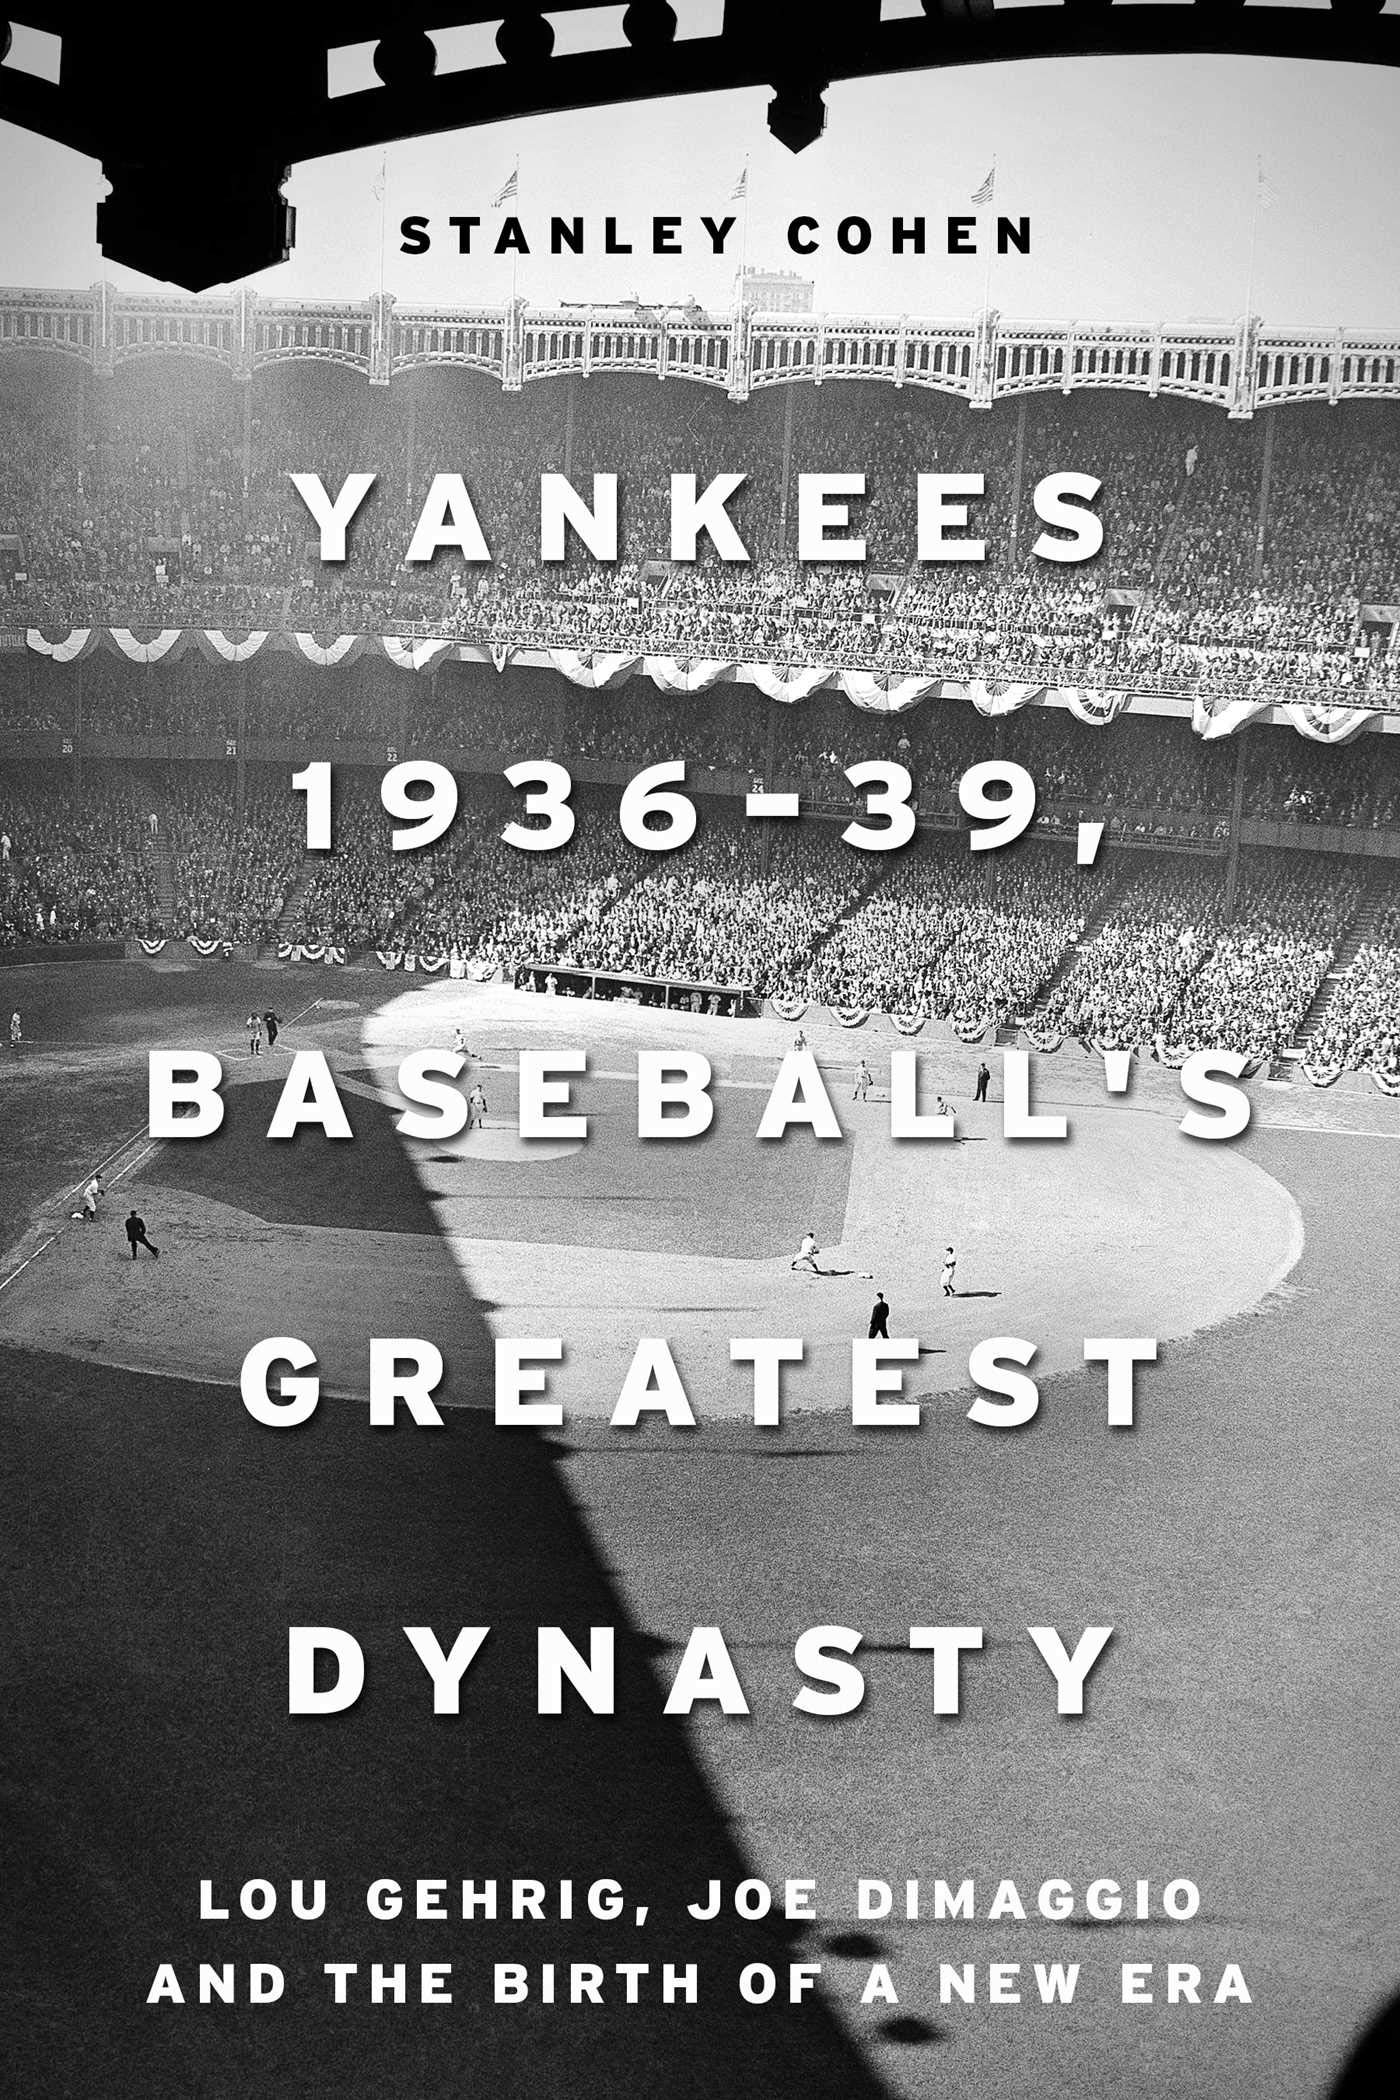 Joe DiMaggio and the Birth of a New Era 39 Baseballs Greatest Dynasty: Lou Gehrig Yankees 1936